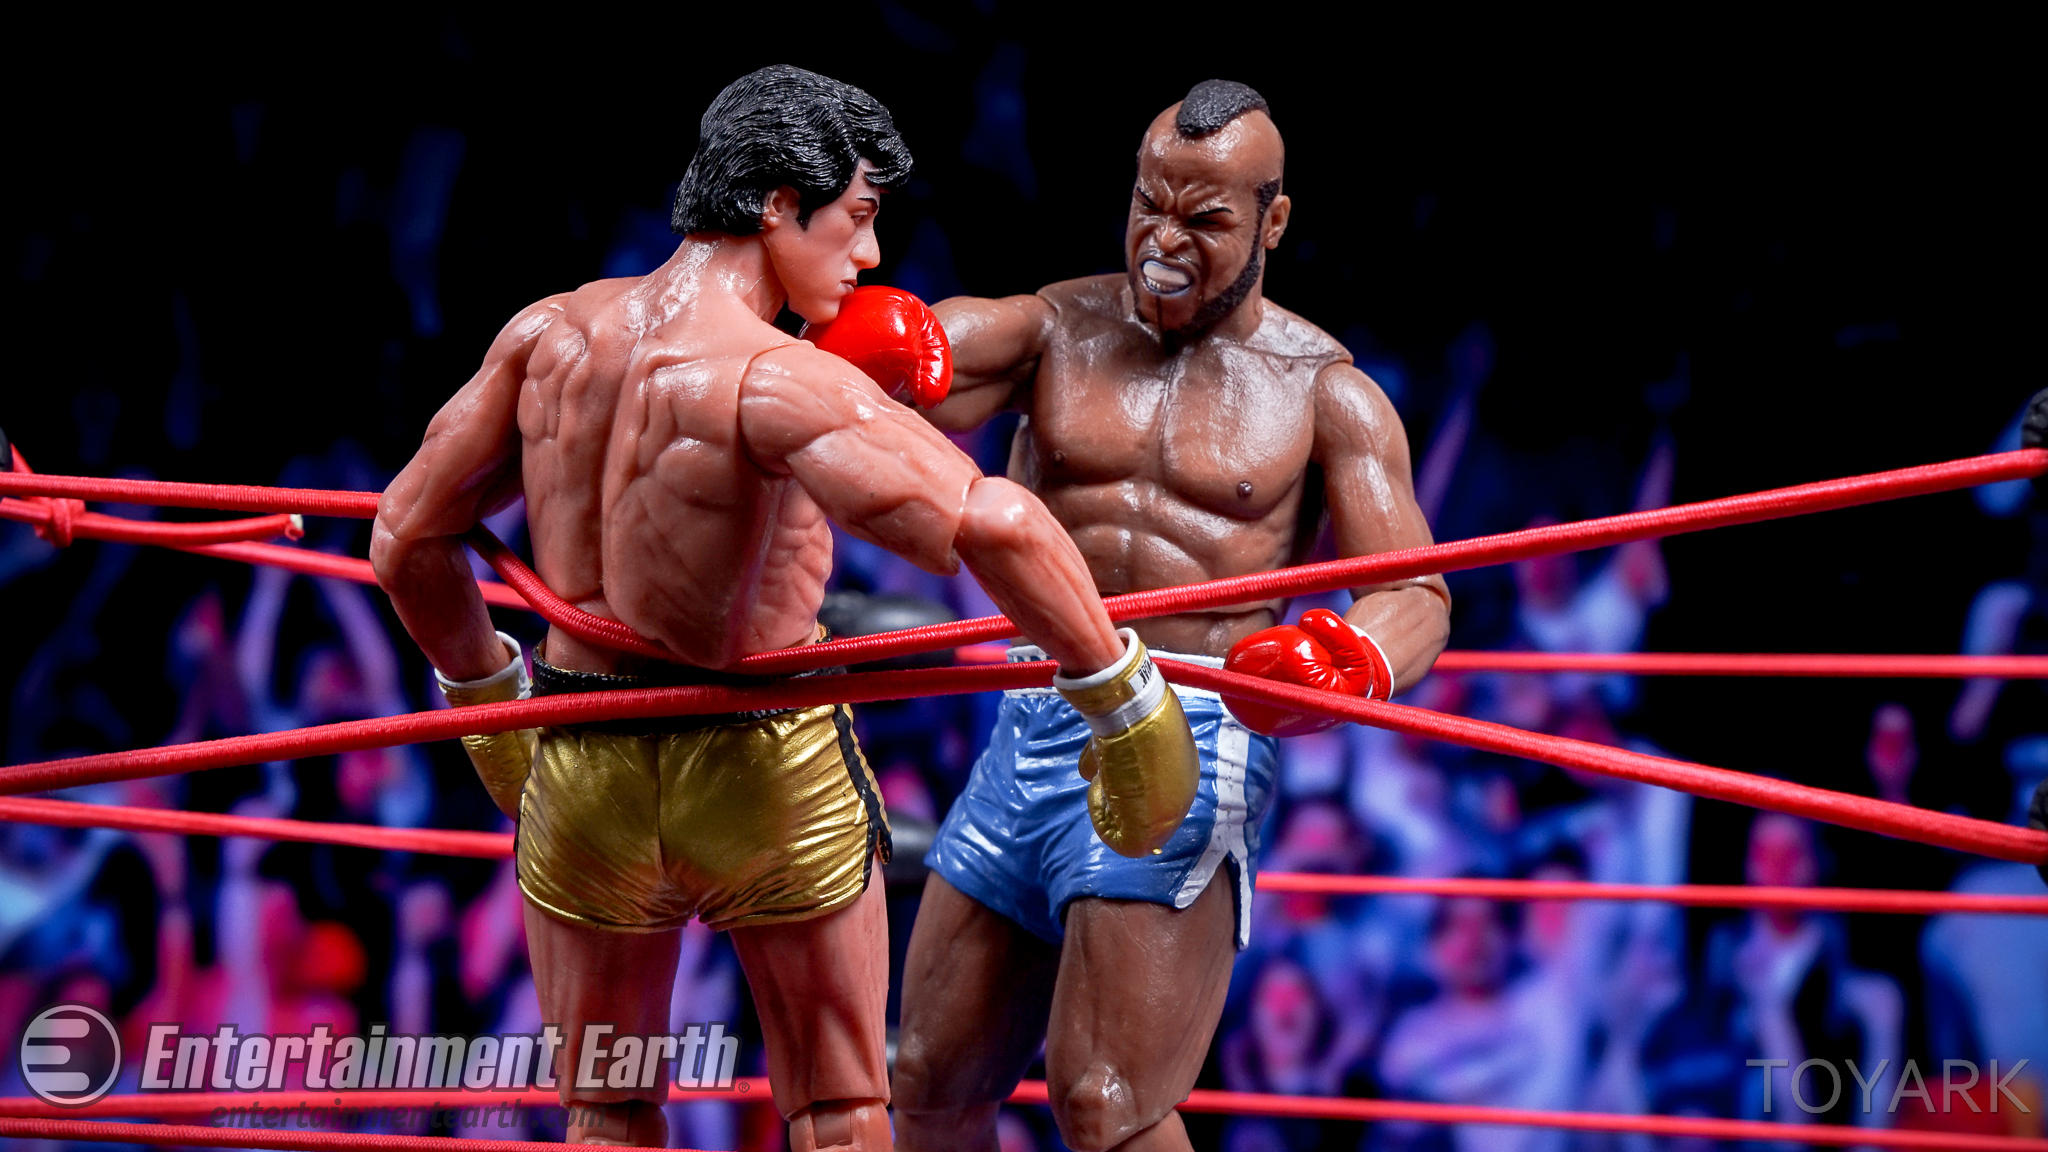 http://news.toyark.com/wp-content/uploads/sites/4/2016/06/Rocky-Series-1-NECA-072.jpg